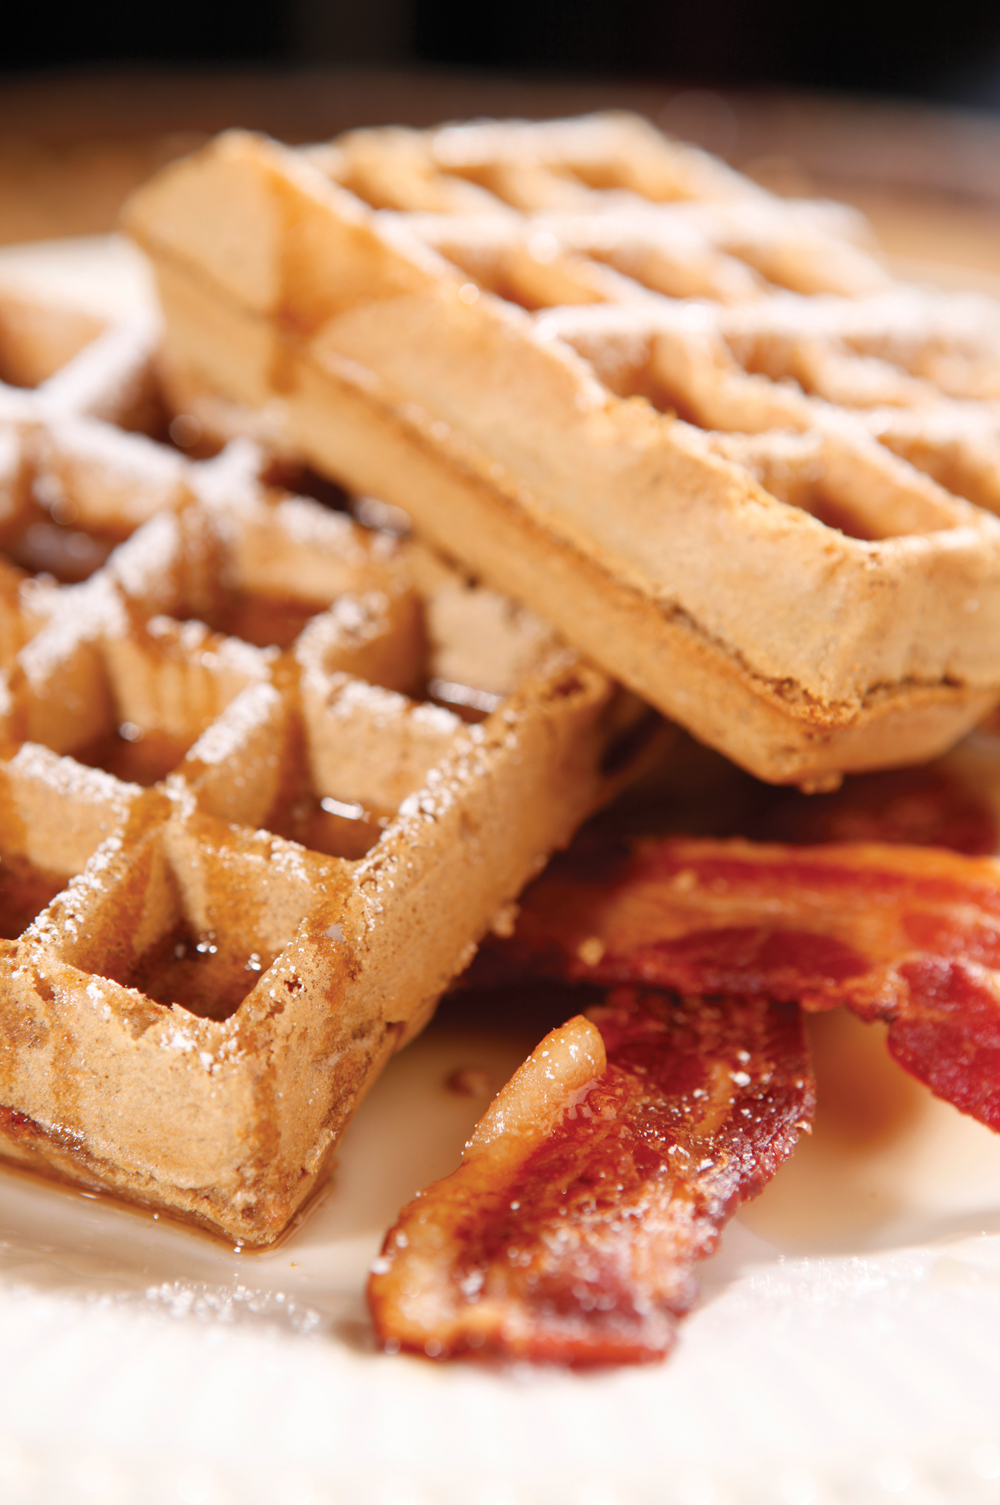 Beer Waffles with Cinnamon-Caramel Apples | CraftBeer.com